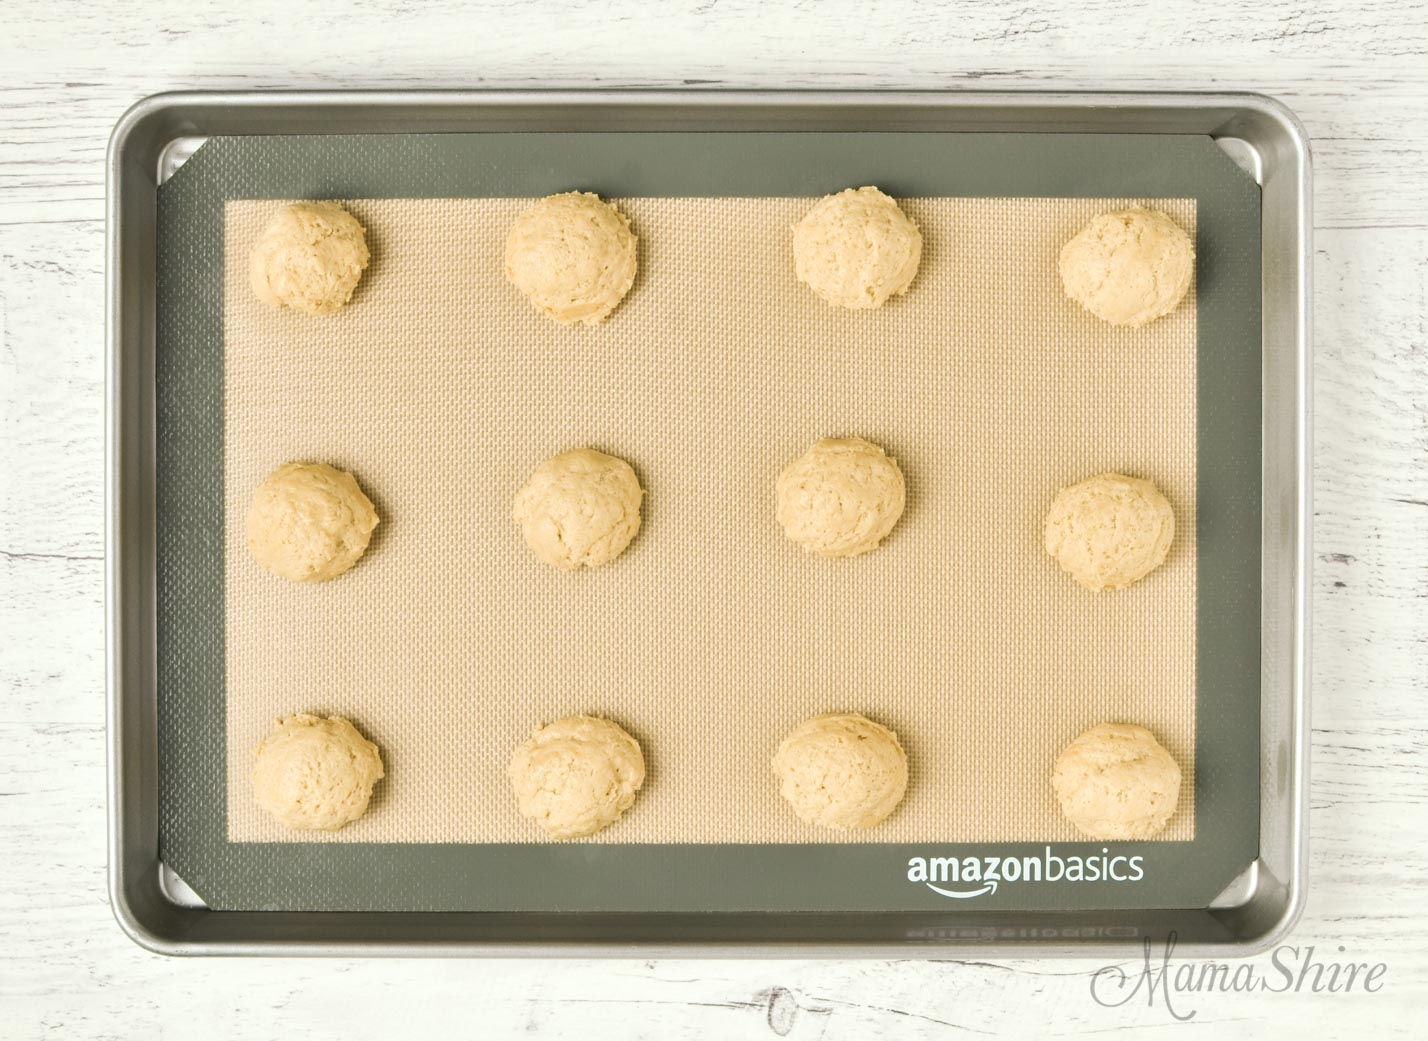 Cookie dough on a silicone baking mat.